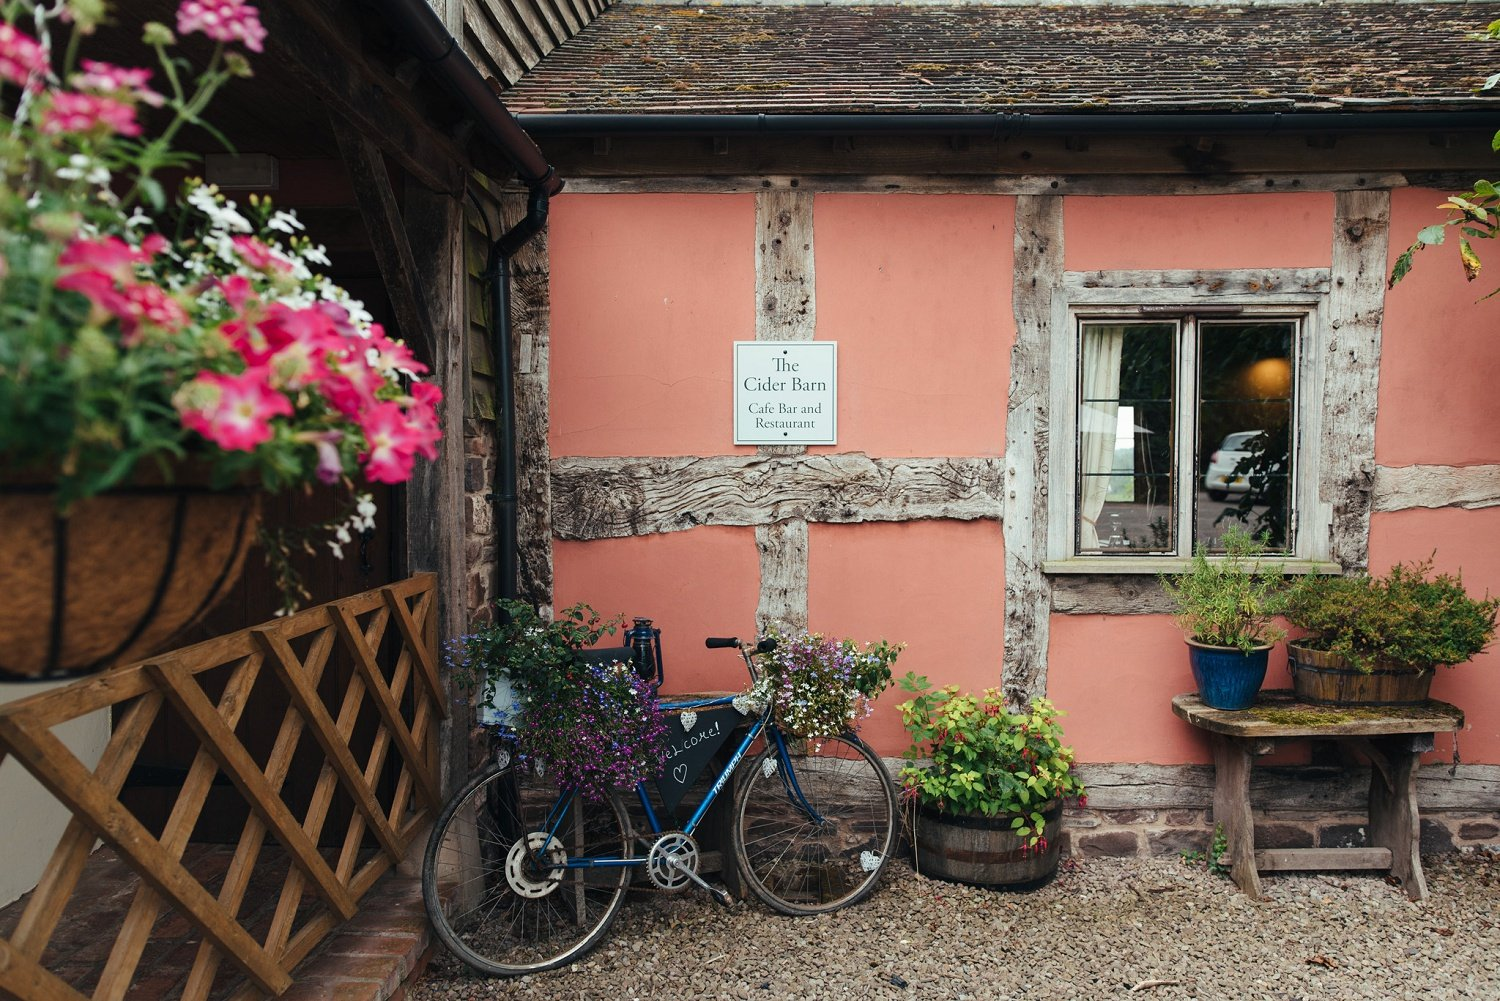 Cider Barn in Herefordshire, welcome scene